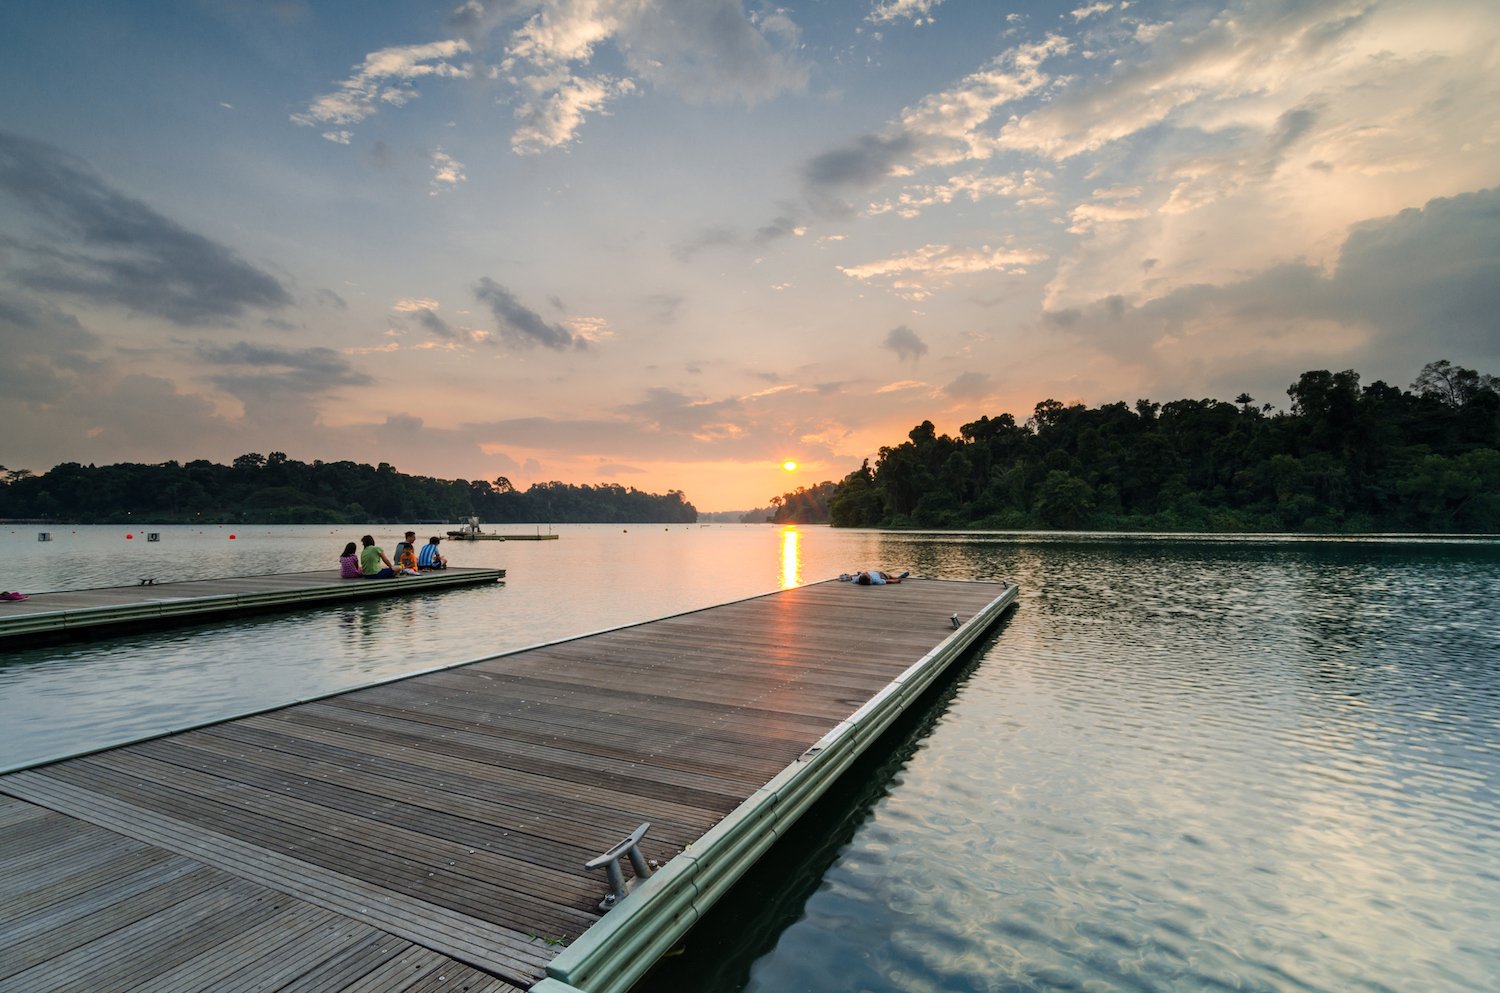 JadeScape offers sweeping views of MacRitchie Reservoir